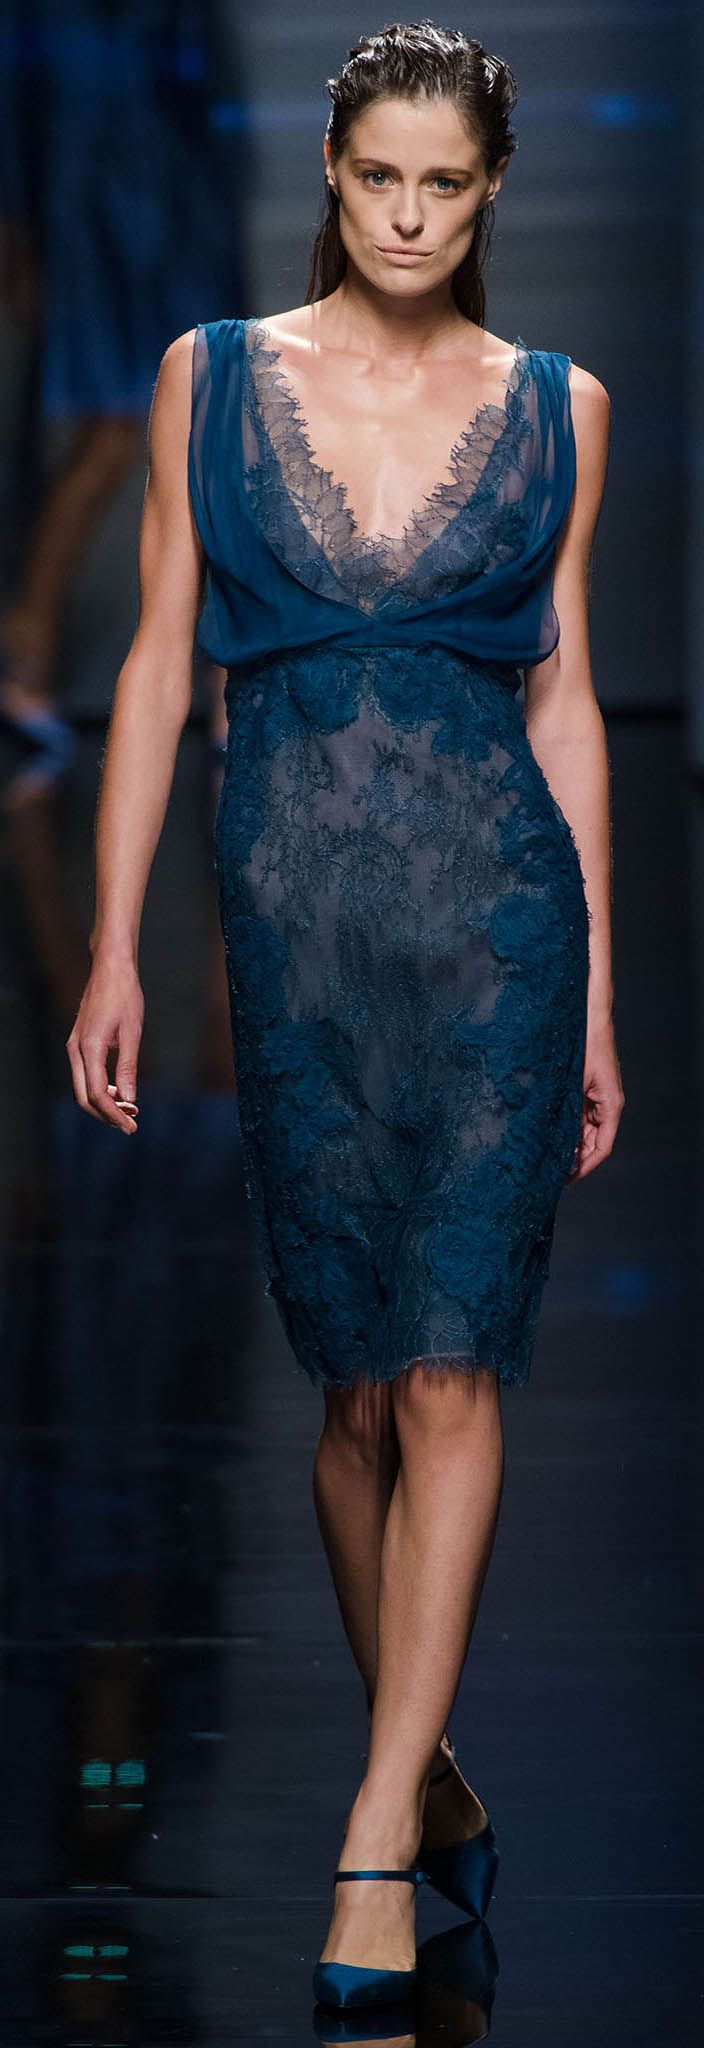 Farb-und Stilberatung mit www.farben-reich.com Alberta Ferretti Spring Summer 2013 Ready To Wear Collection